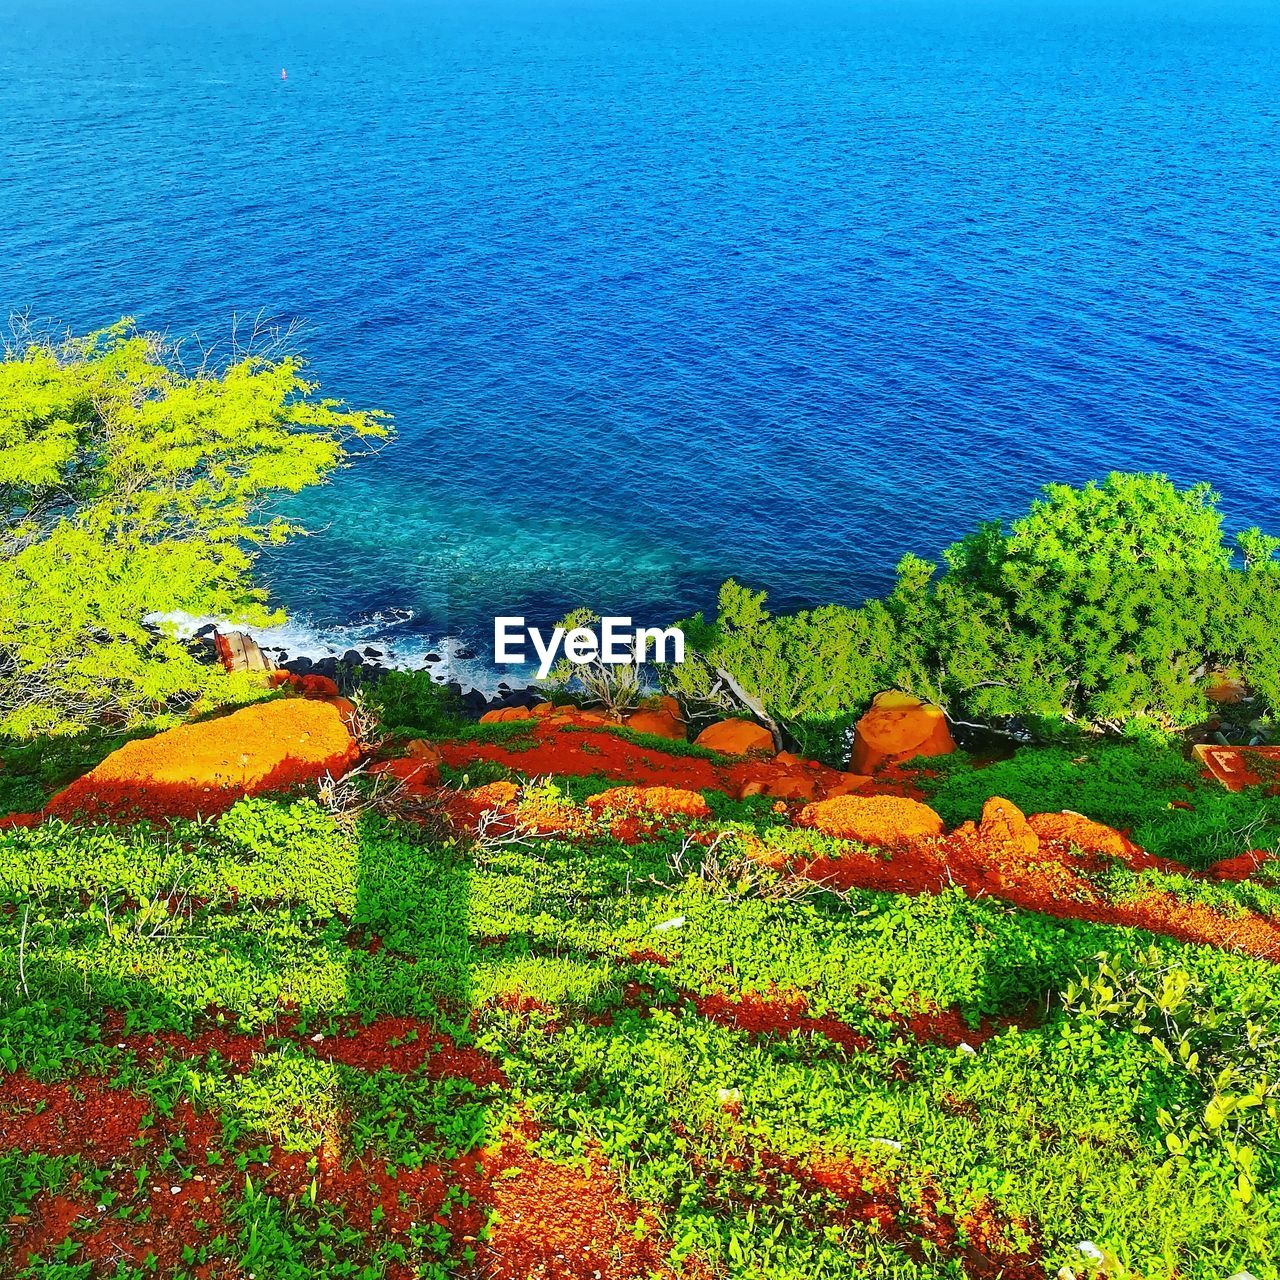 beauty in nature, plant, water, scenics - nature, tranquility, tranquil scene, sea, green color, high angle view, growth, day, nature, no people, land, blue, grass, tree, beach, idyllic, outdoors, horizon over water